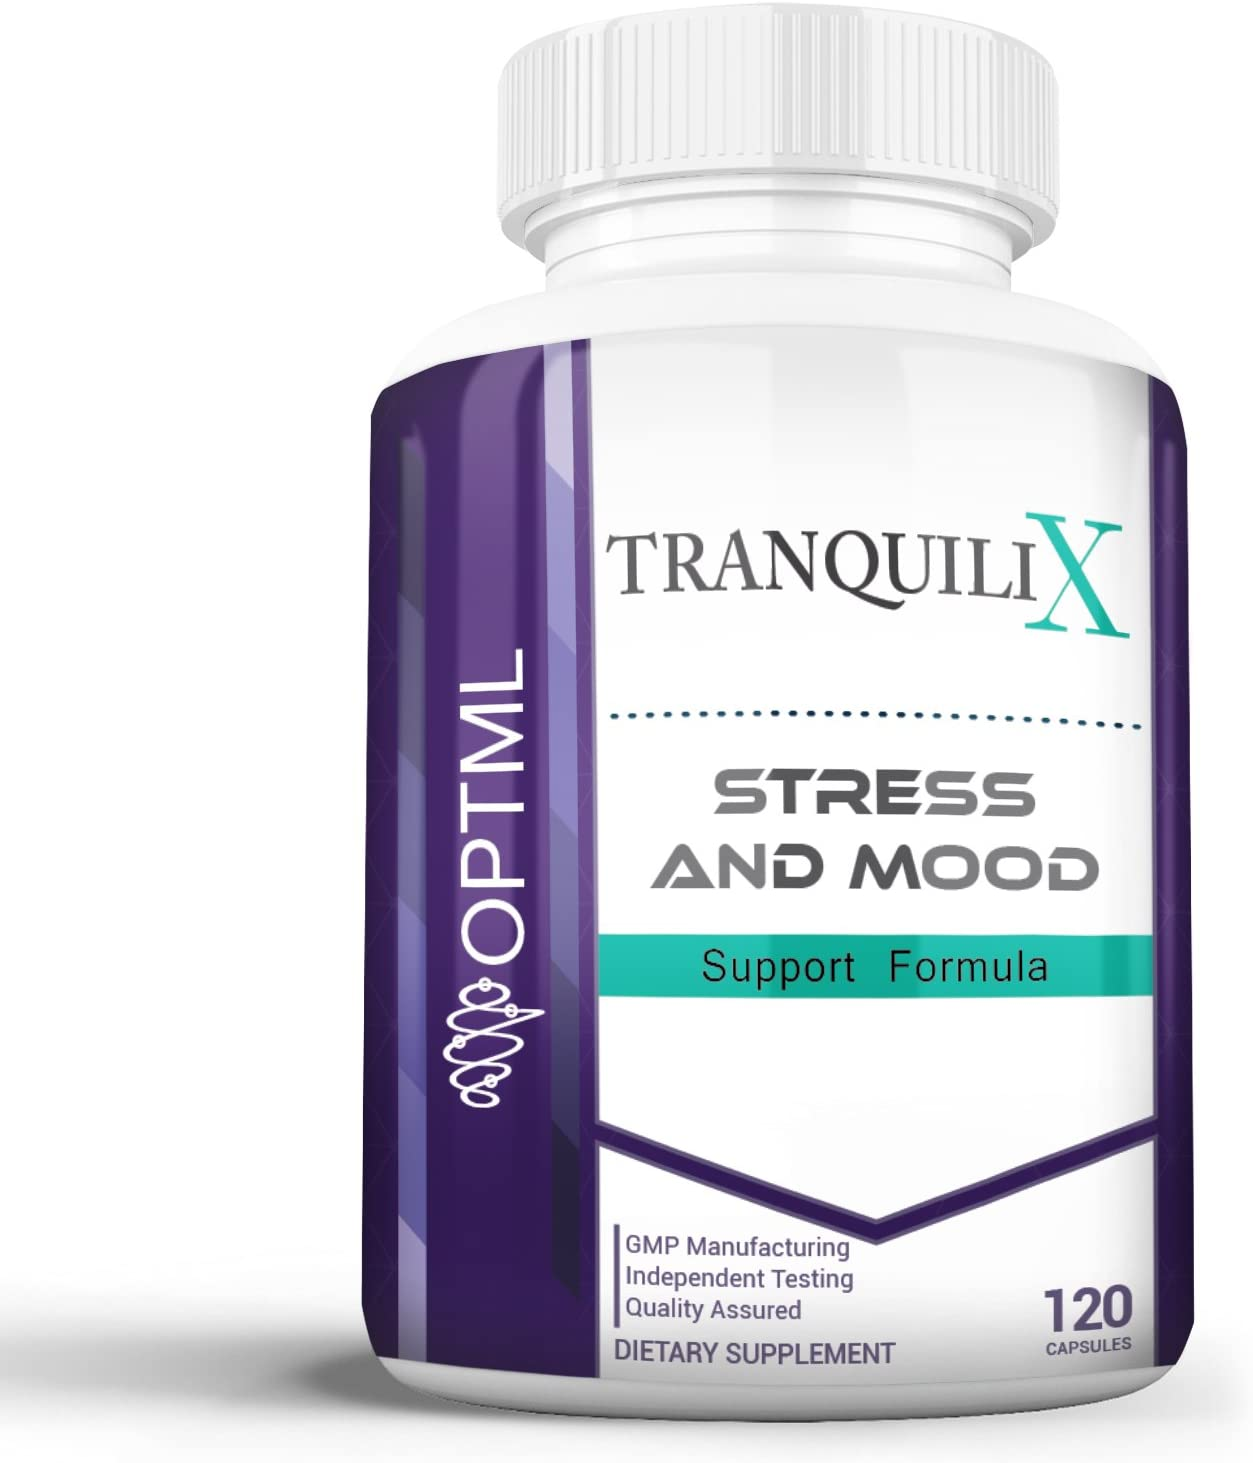 OFFicial shop TranquiliX Anxiety and Stress Relief Max 75% OFF Anti-Anxi Formula Advanced